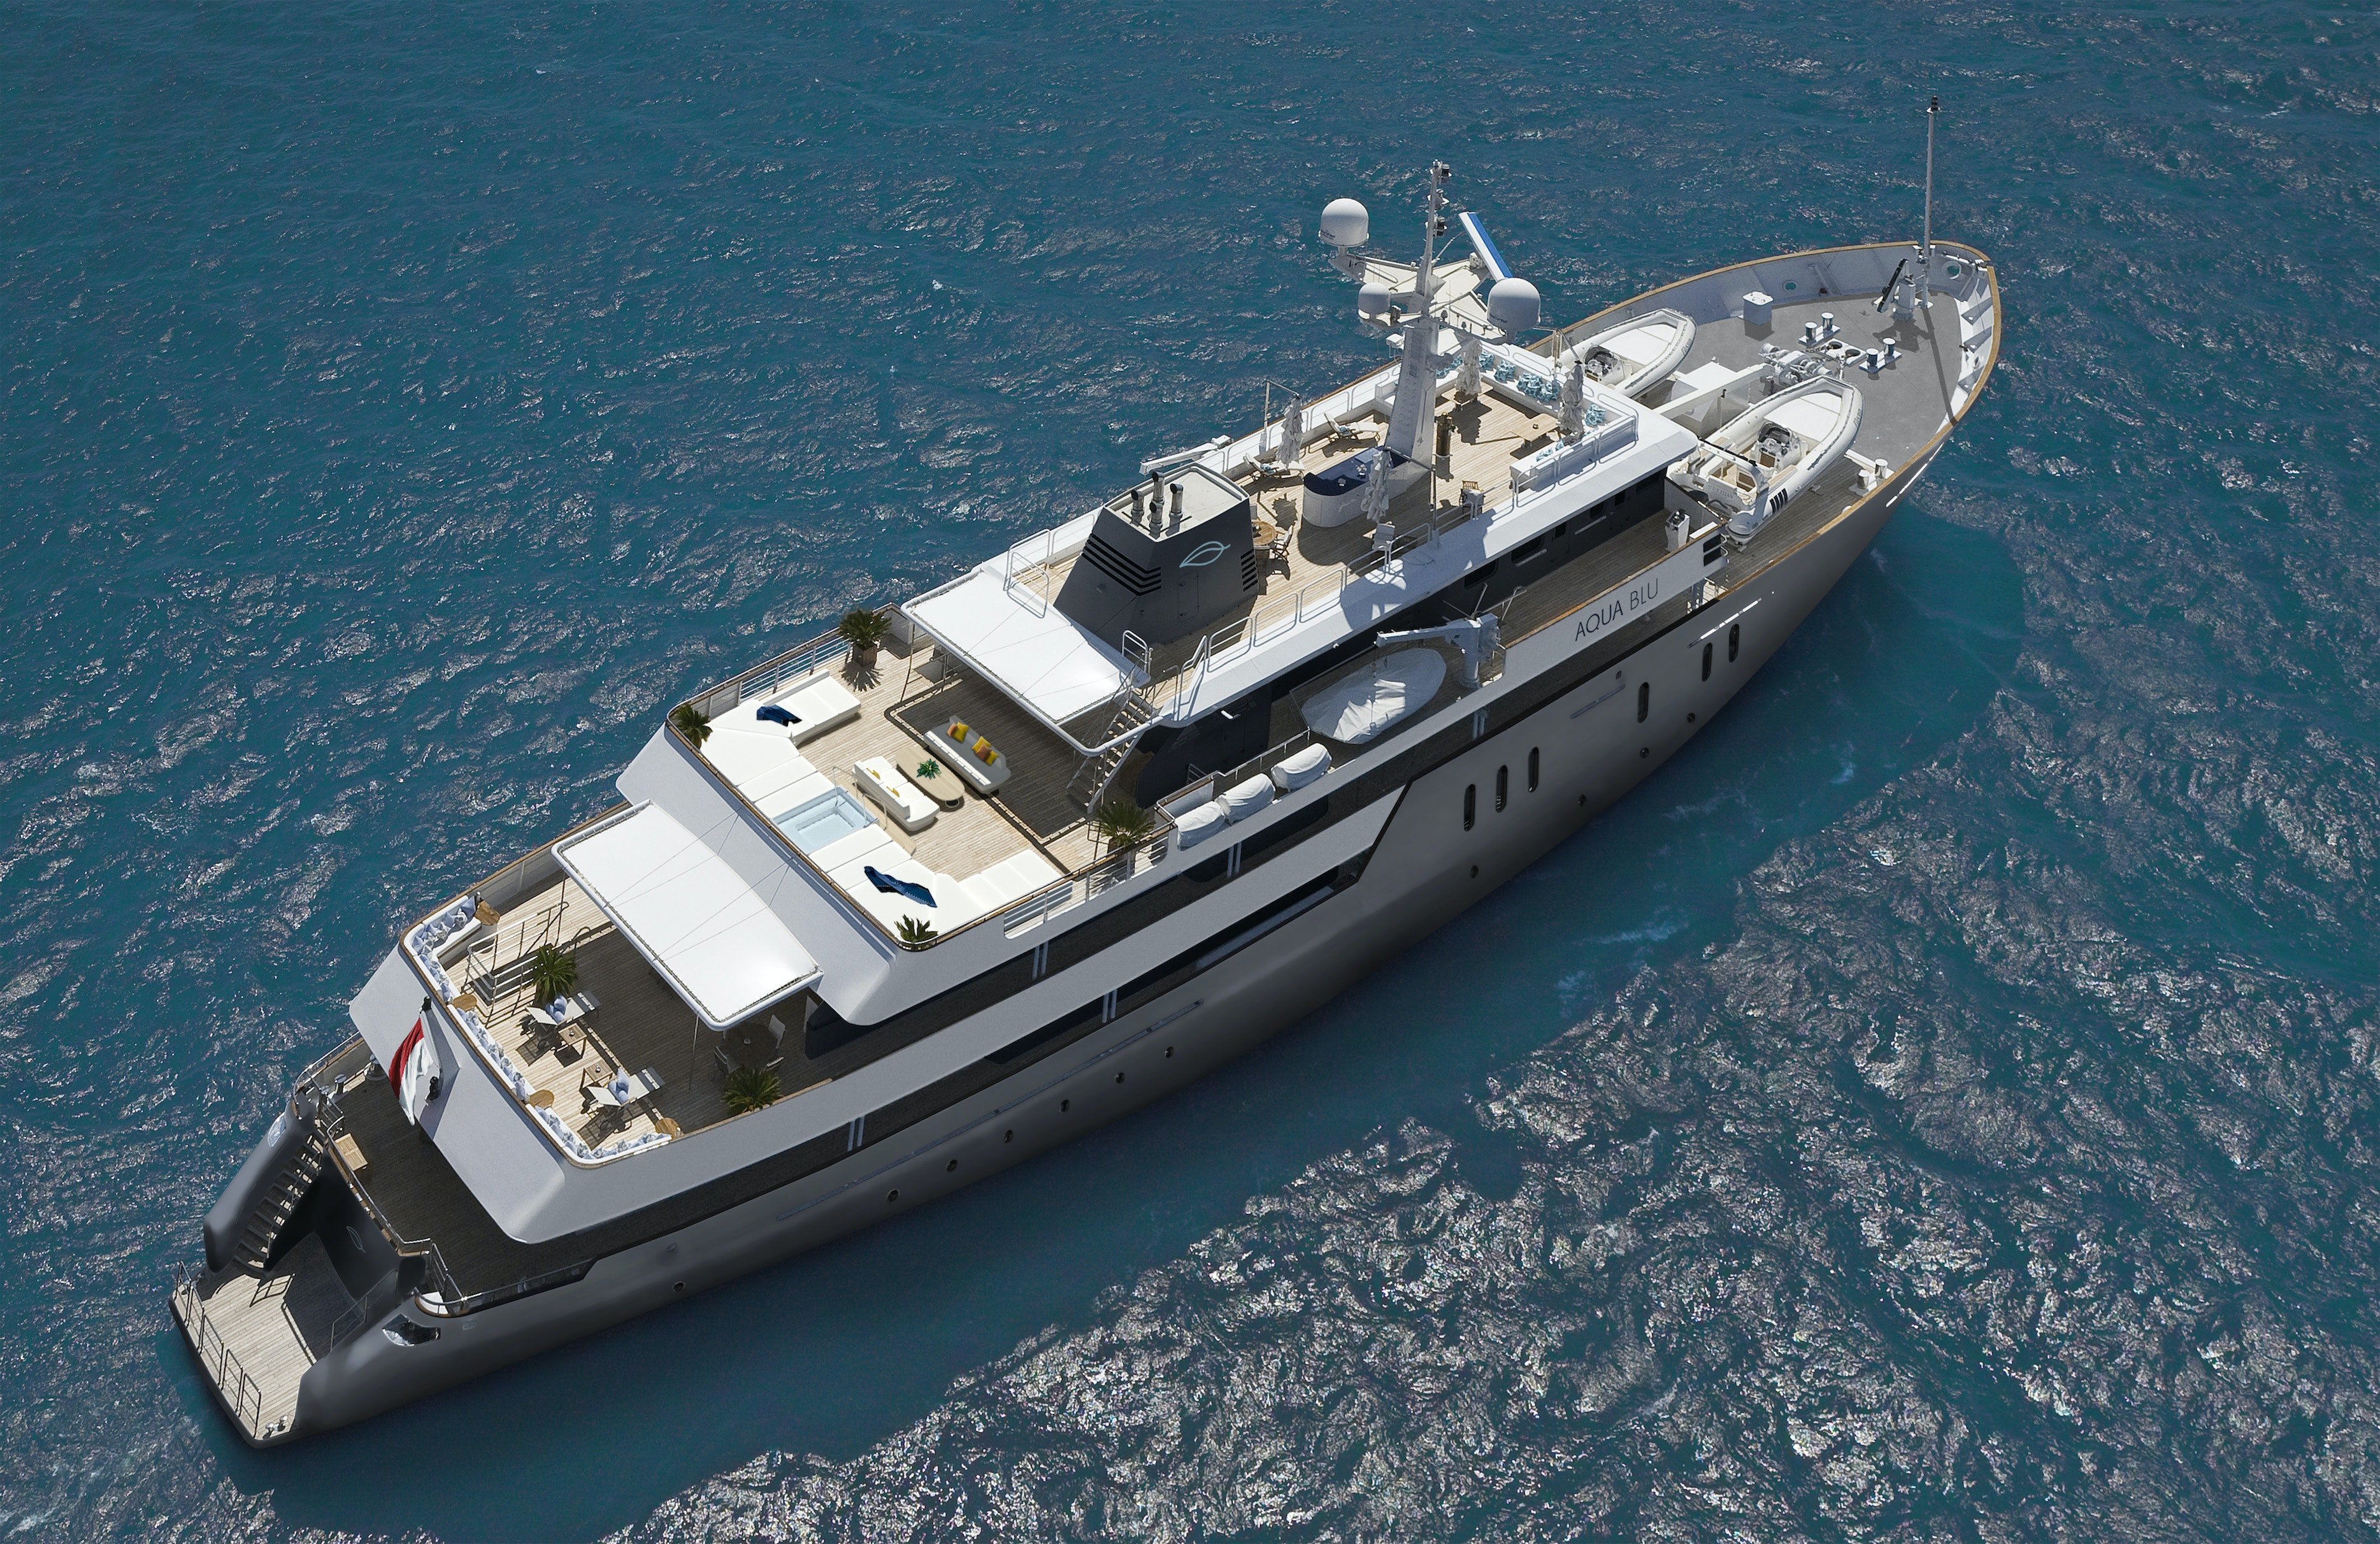 A top-down look at the forthcoming Aqua Blu, a full refurbishment of the British naval vessel the HMS Beagle.